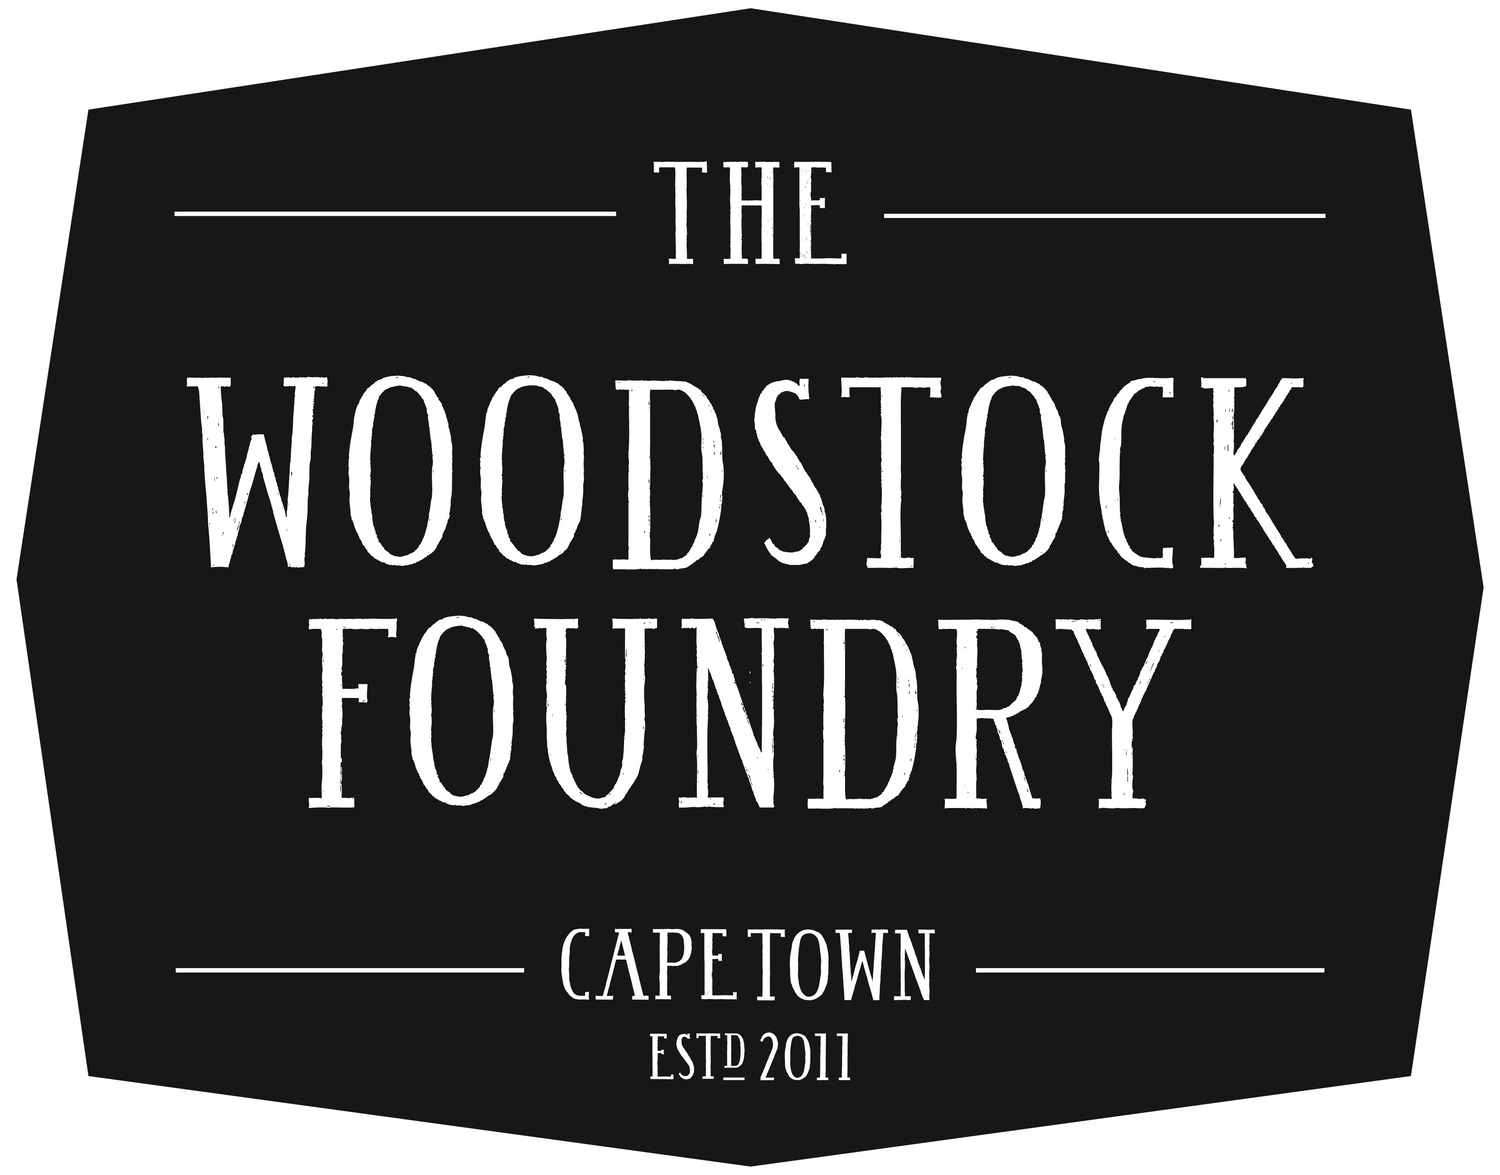 The Woodstock Foundry